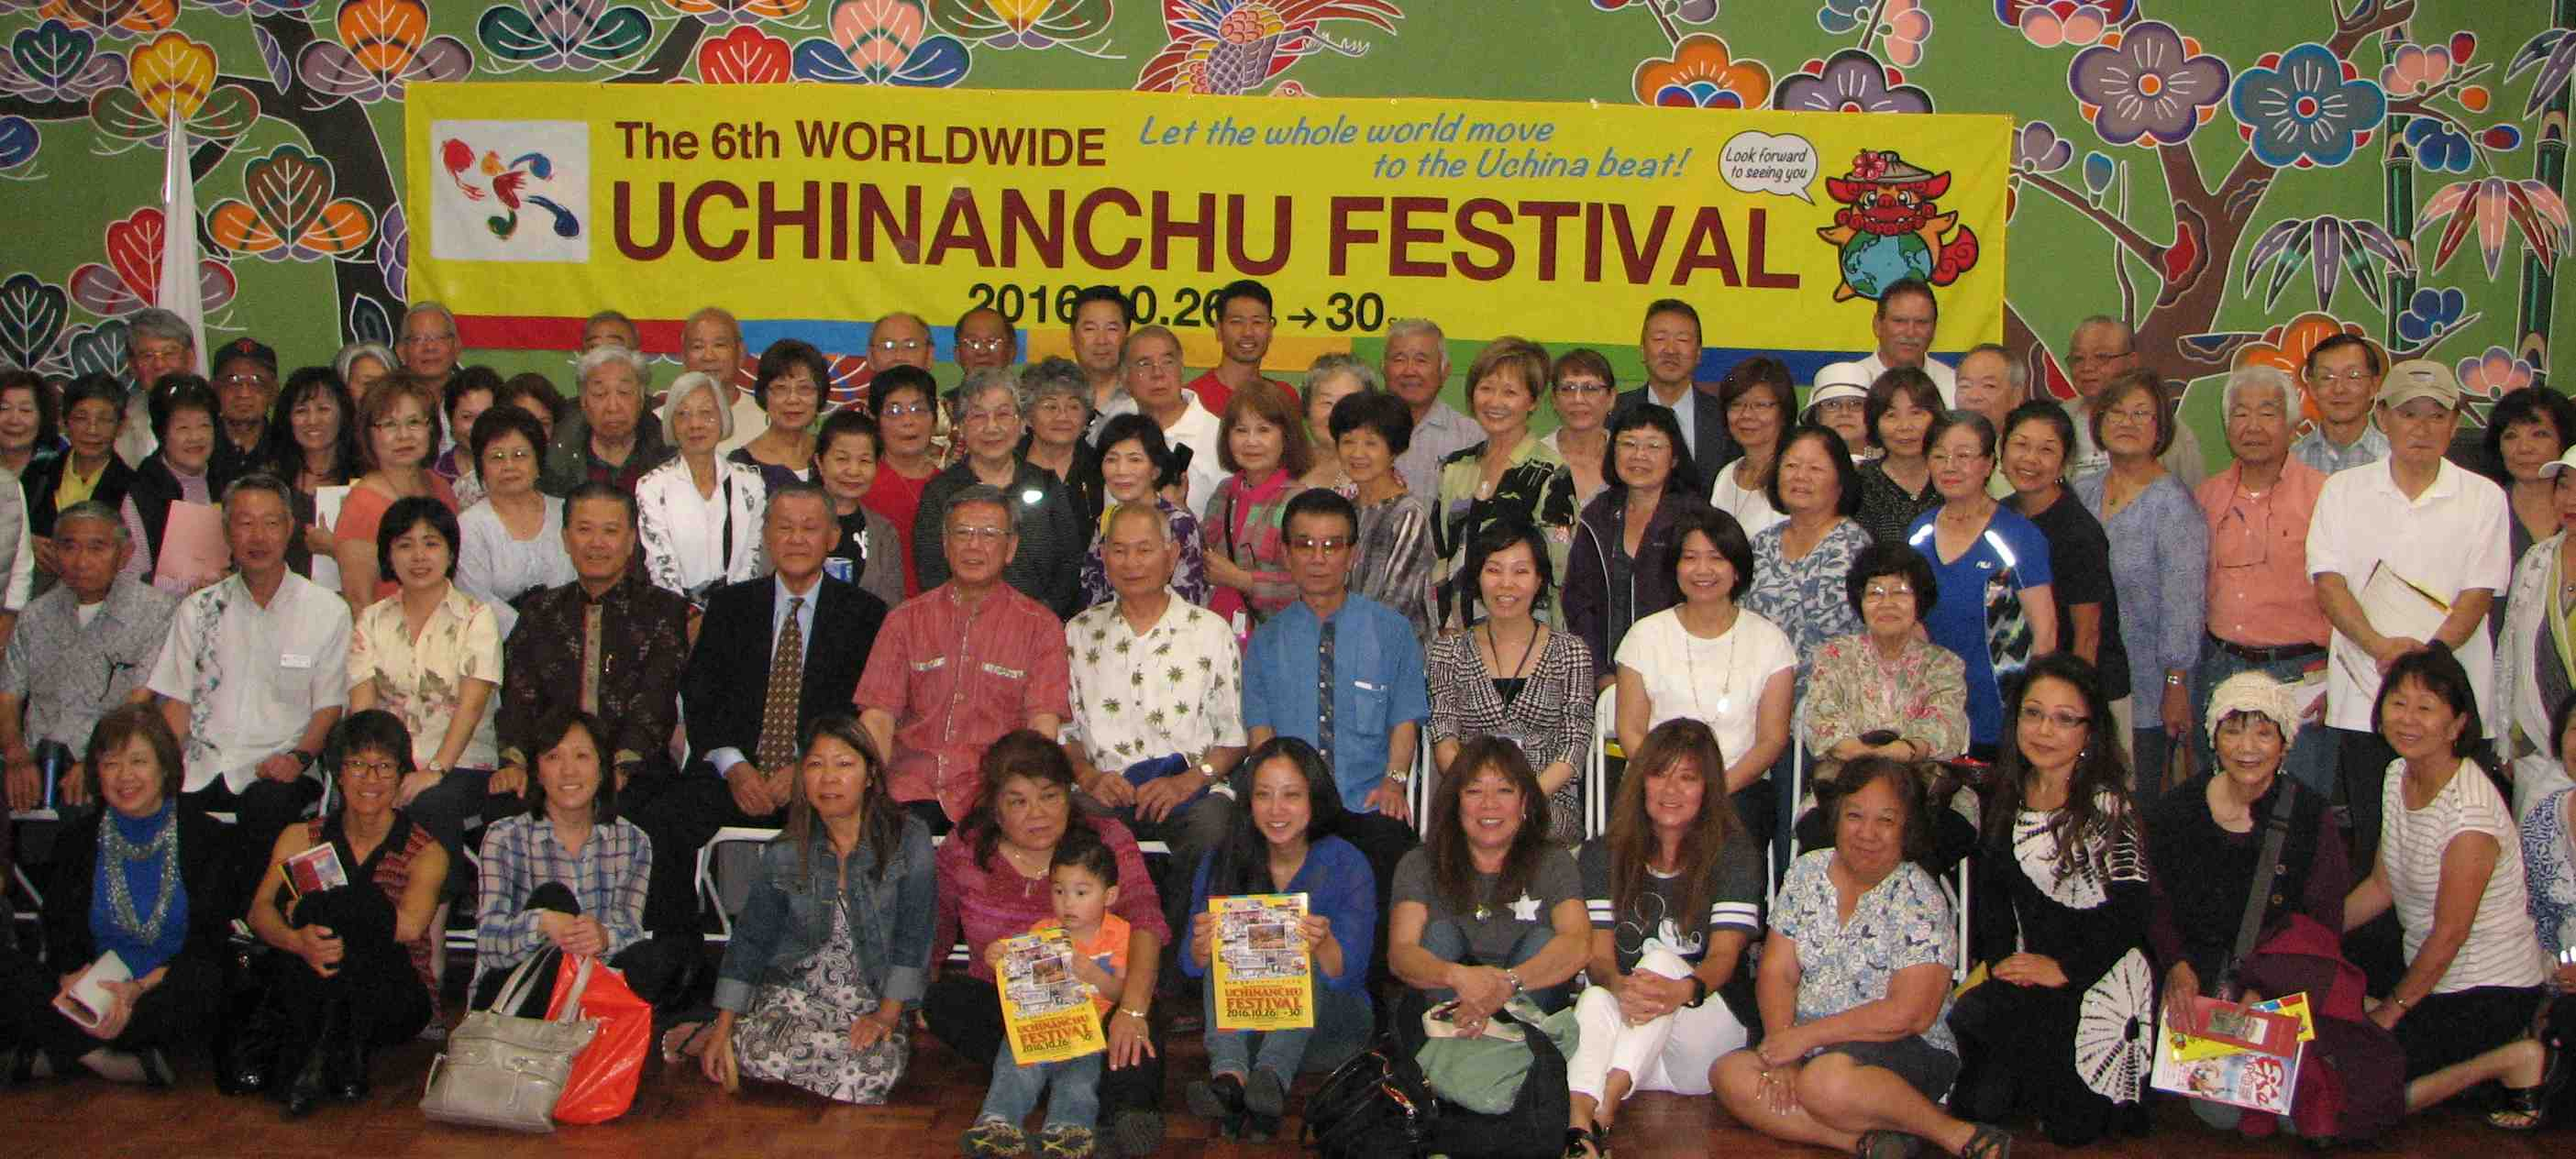 Okinawa Prefecture Gov. Atsushi Onaga and his delegation visited OAA in May to promote the Worldwide Uchinanchu Festival. (J.K. Yamamoto/Rafu Shimpo)